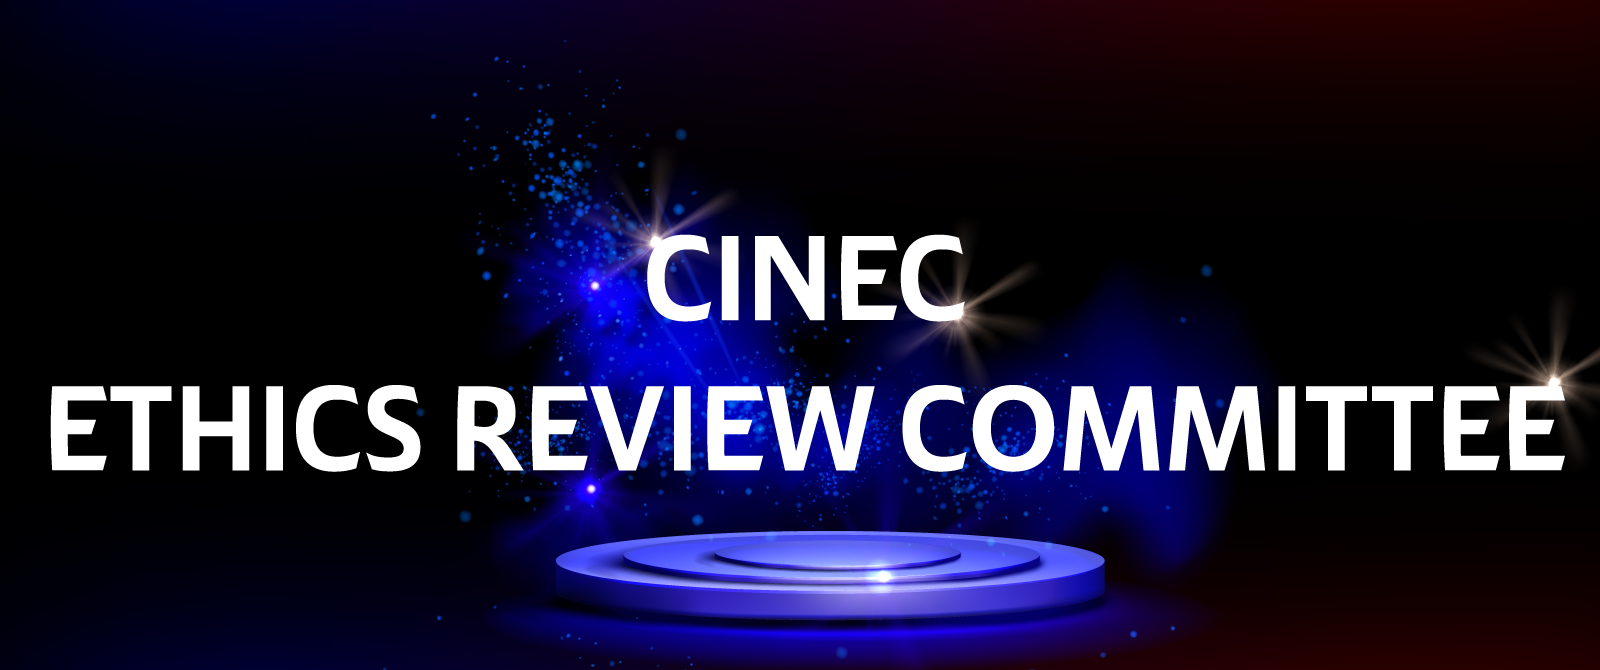 CINEC-ETHICS-REVIEW-COMMITTEE-main